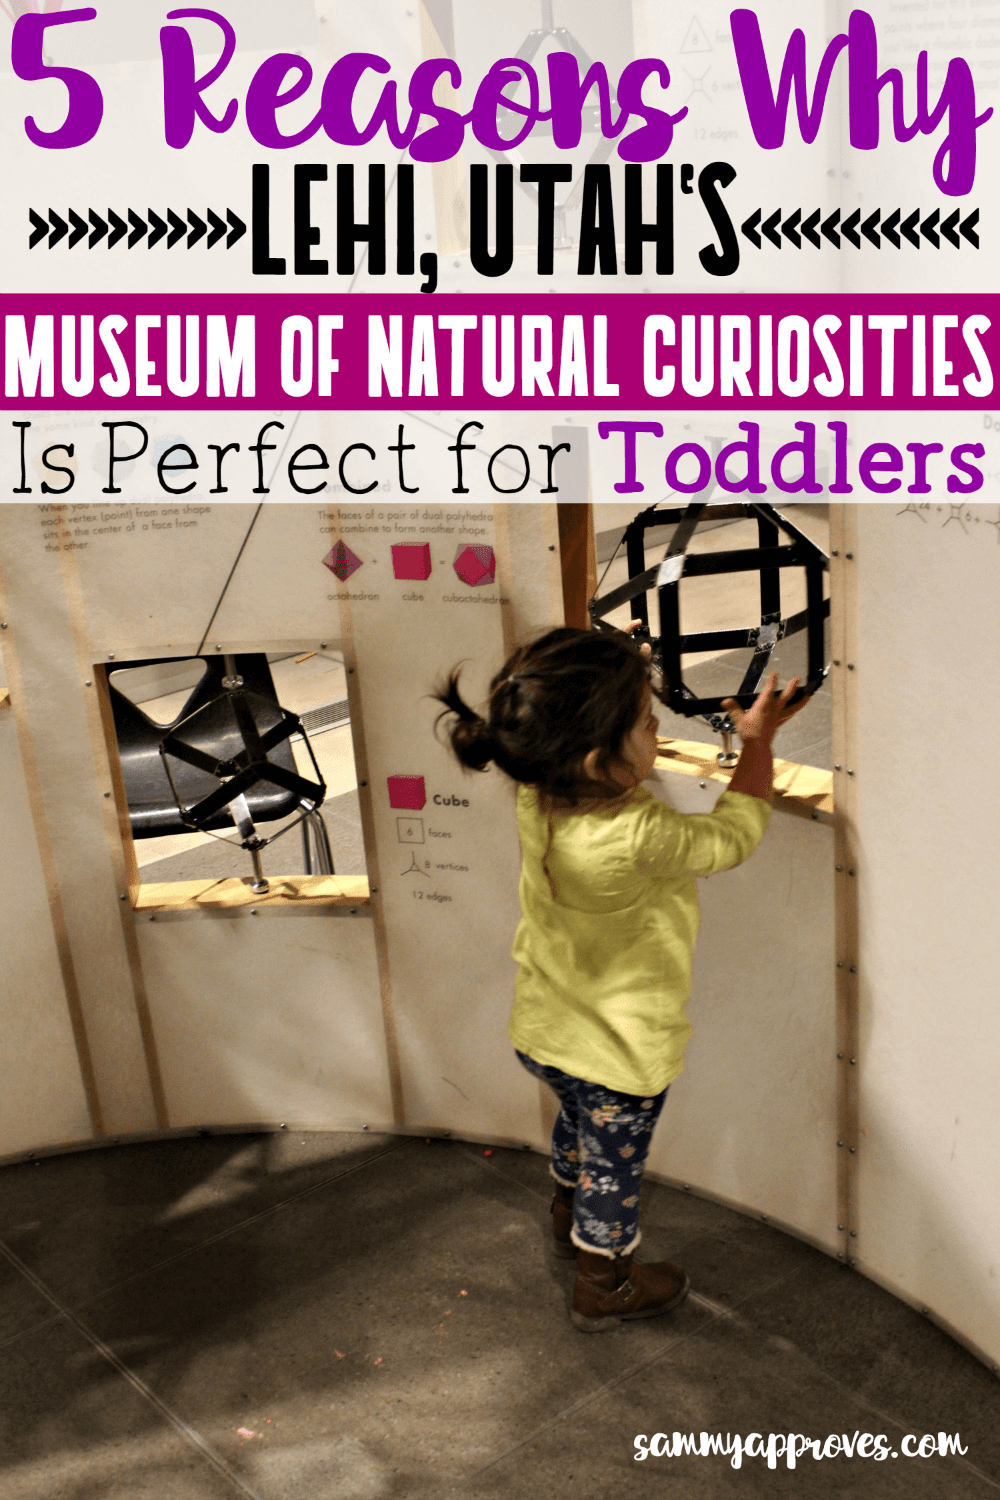 5 Reasons Why Lehi Utah's Museum of Natural Curiosities is Perfect for Toddlers